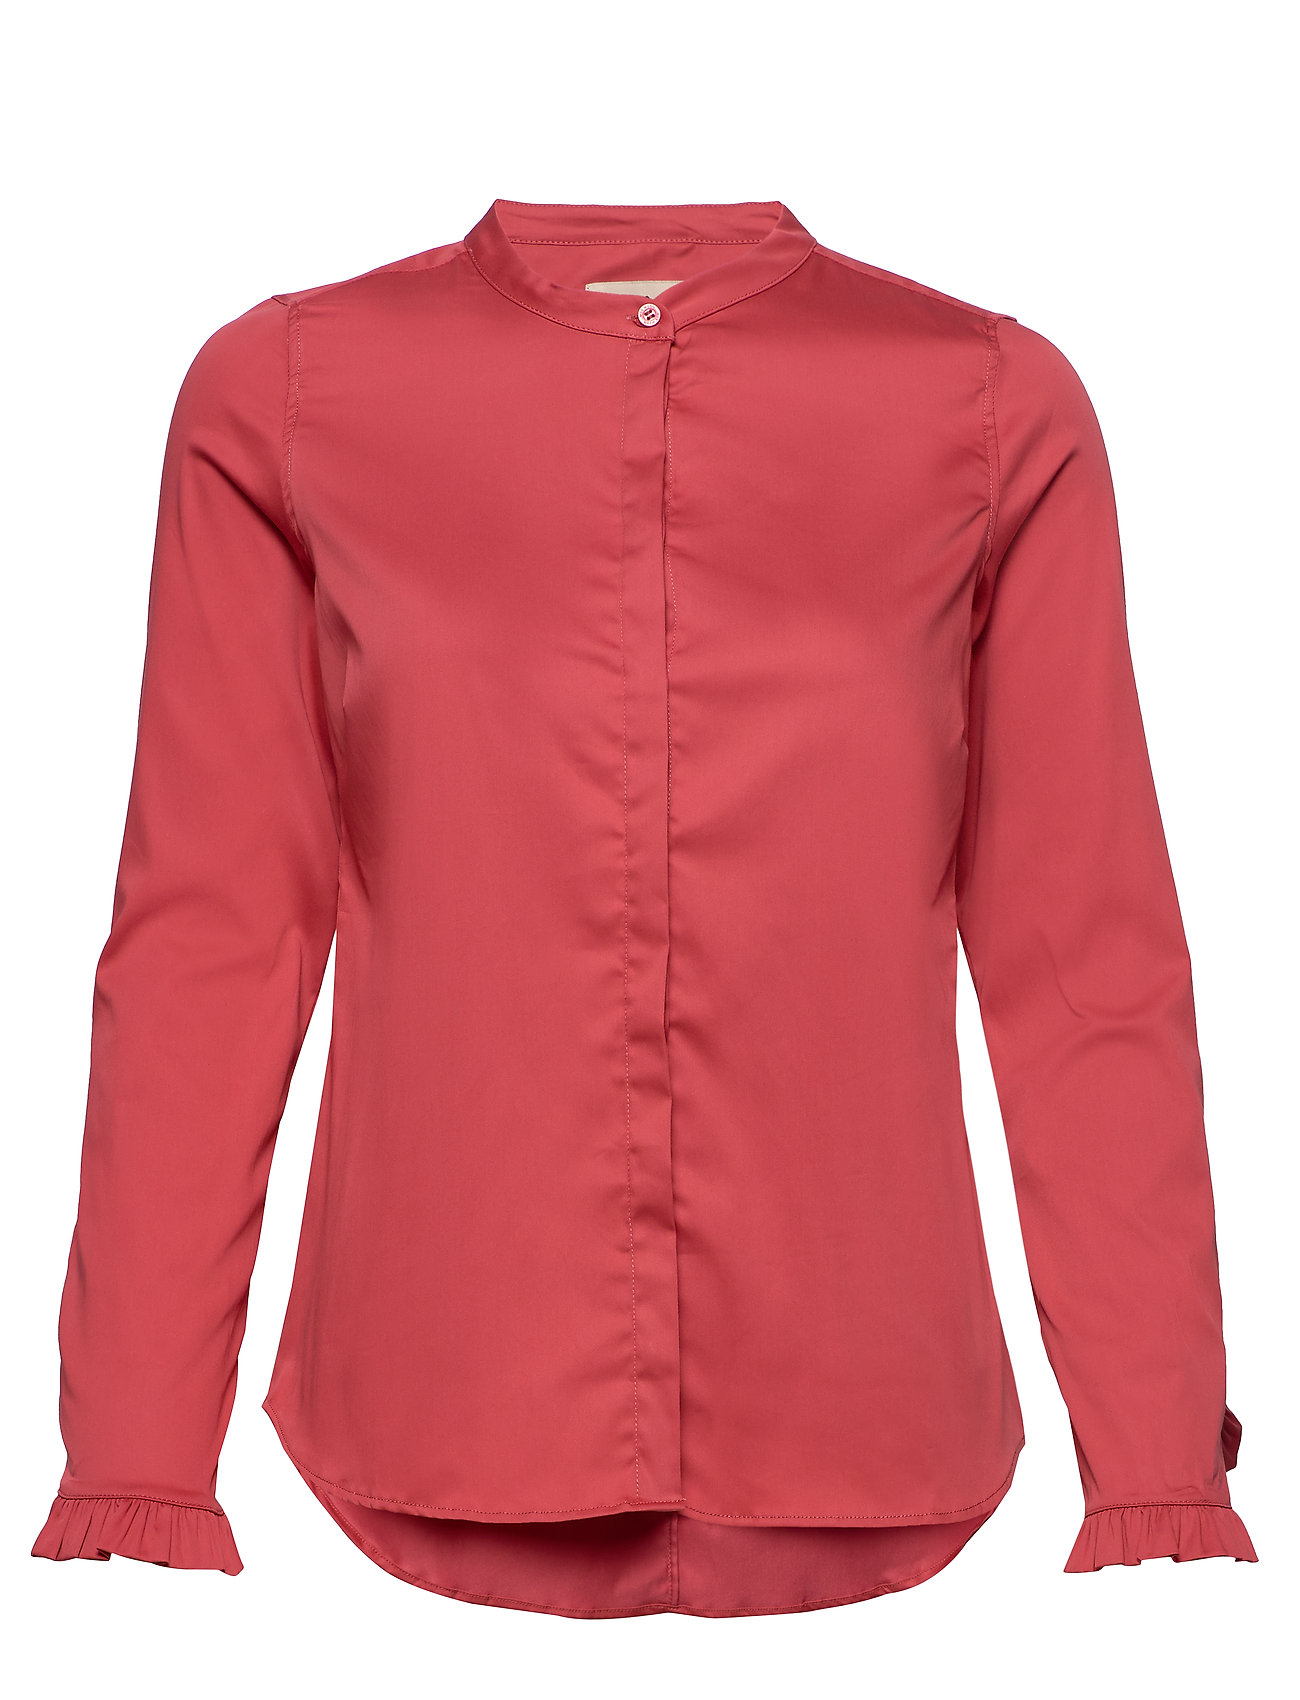 Image of Mattie Sustainable Shirt Langærmet Skjorte Rød MOS MOSH (3351891089)